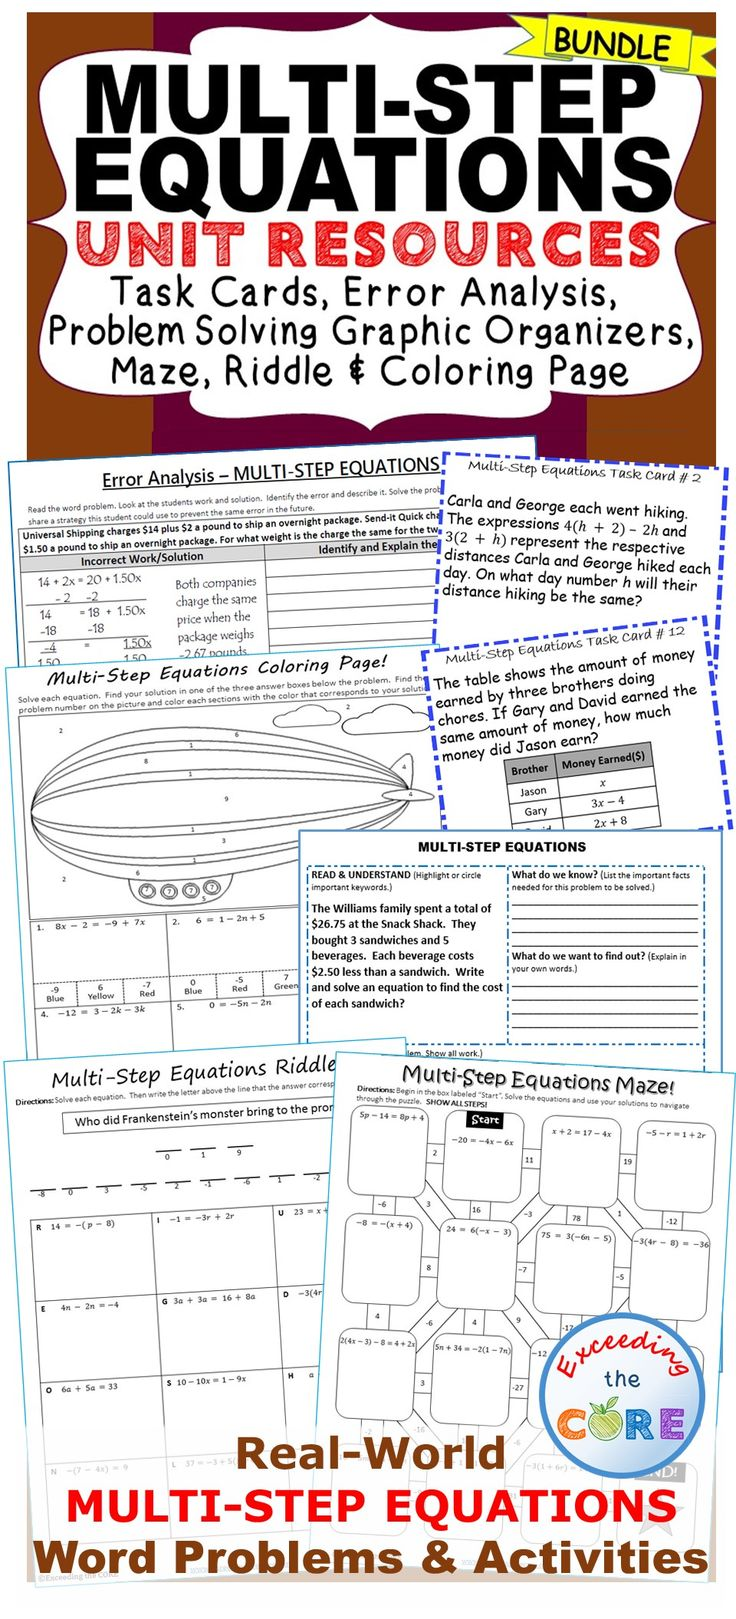 small resolution of MULTI-STEP EQUATIONS BUNDLE - Task Cards